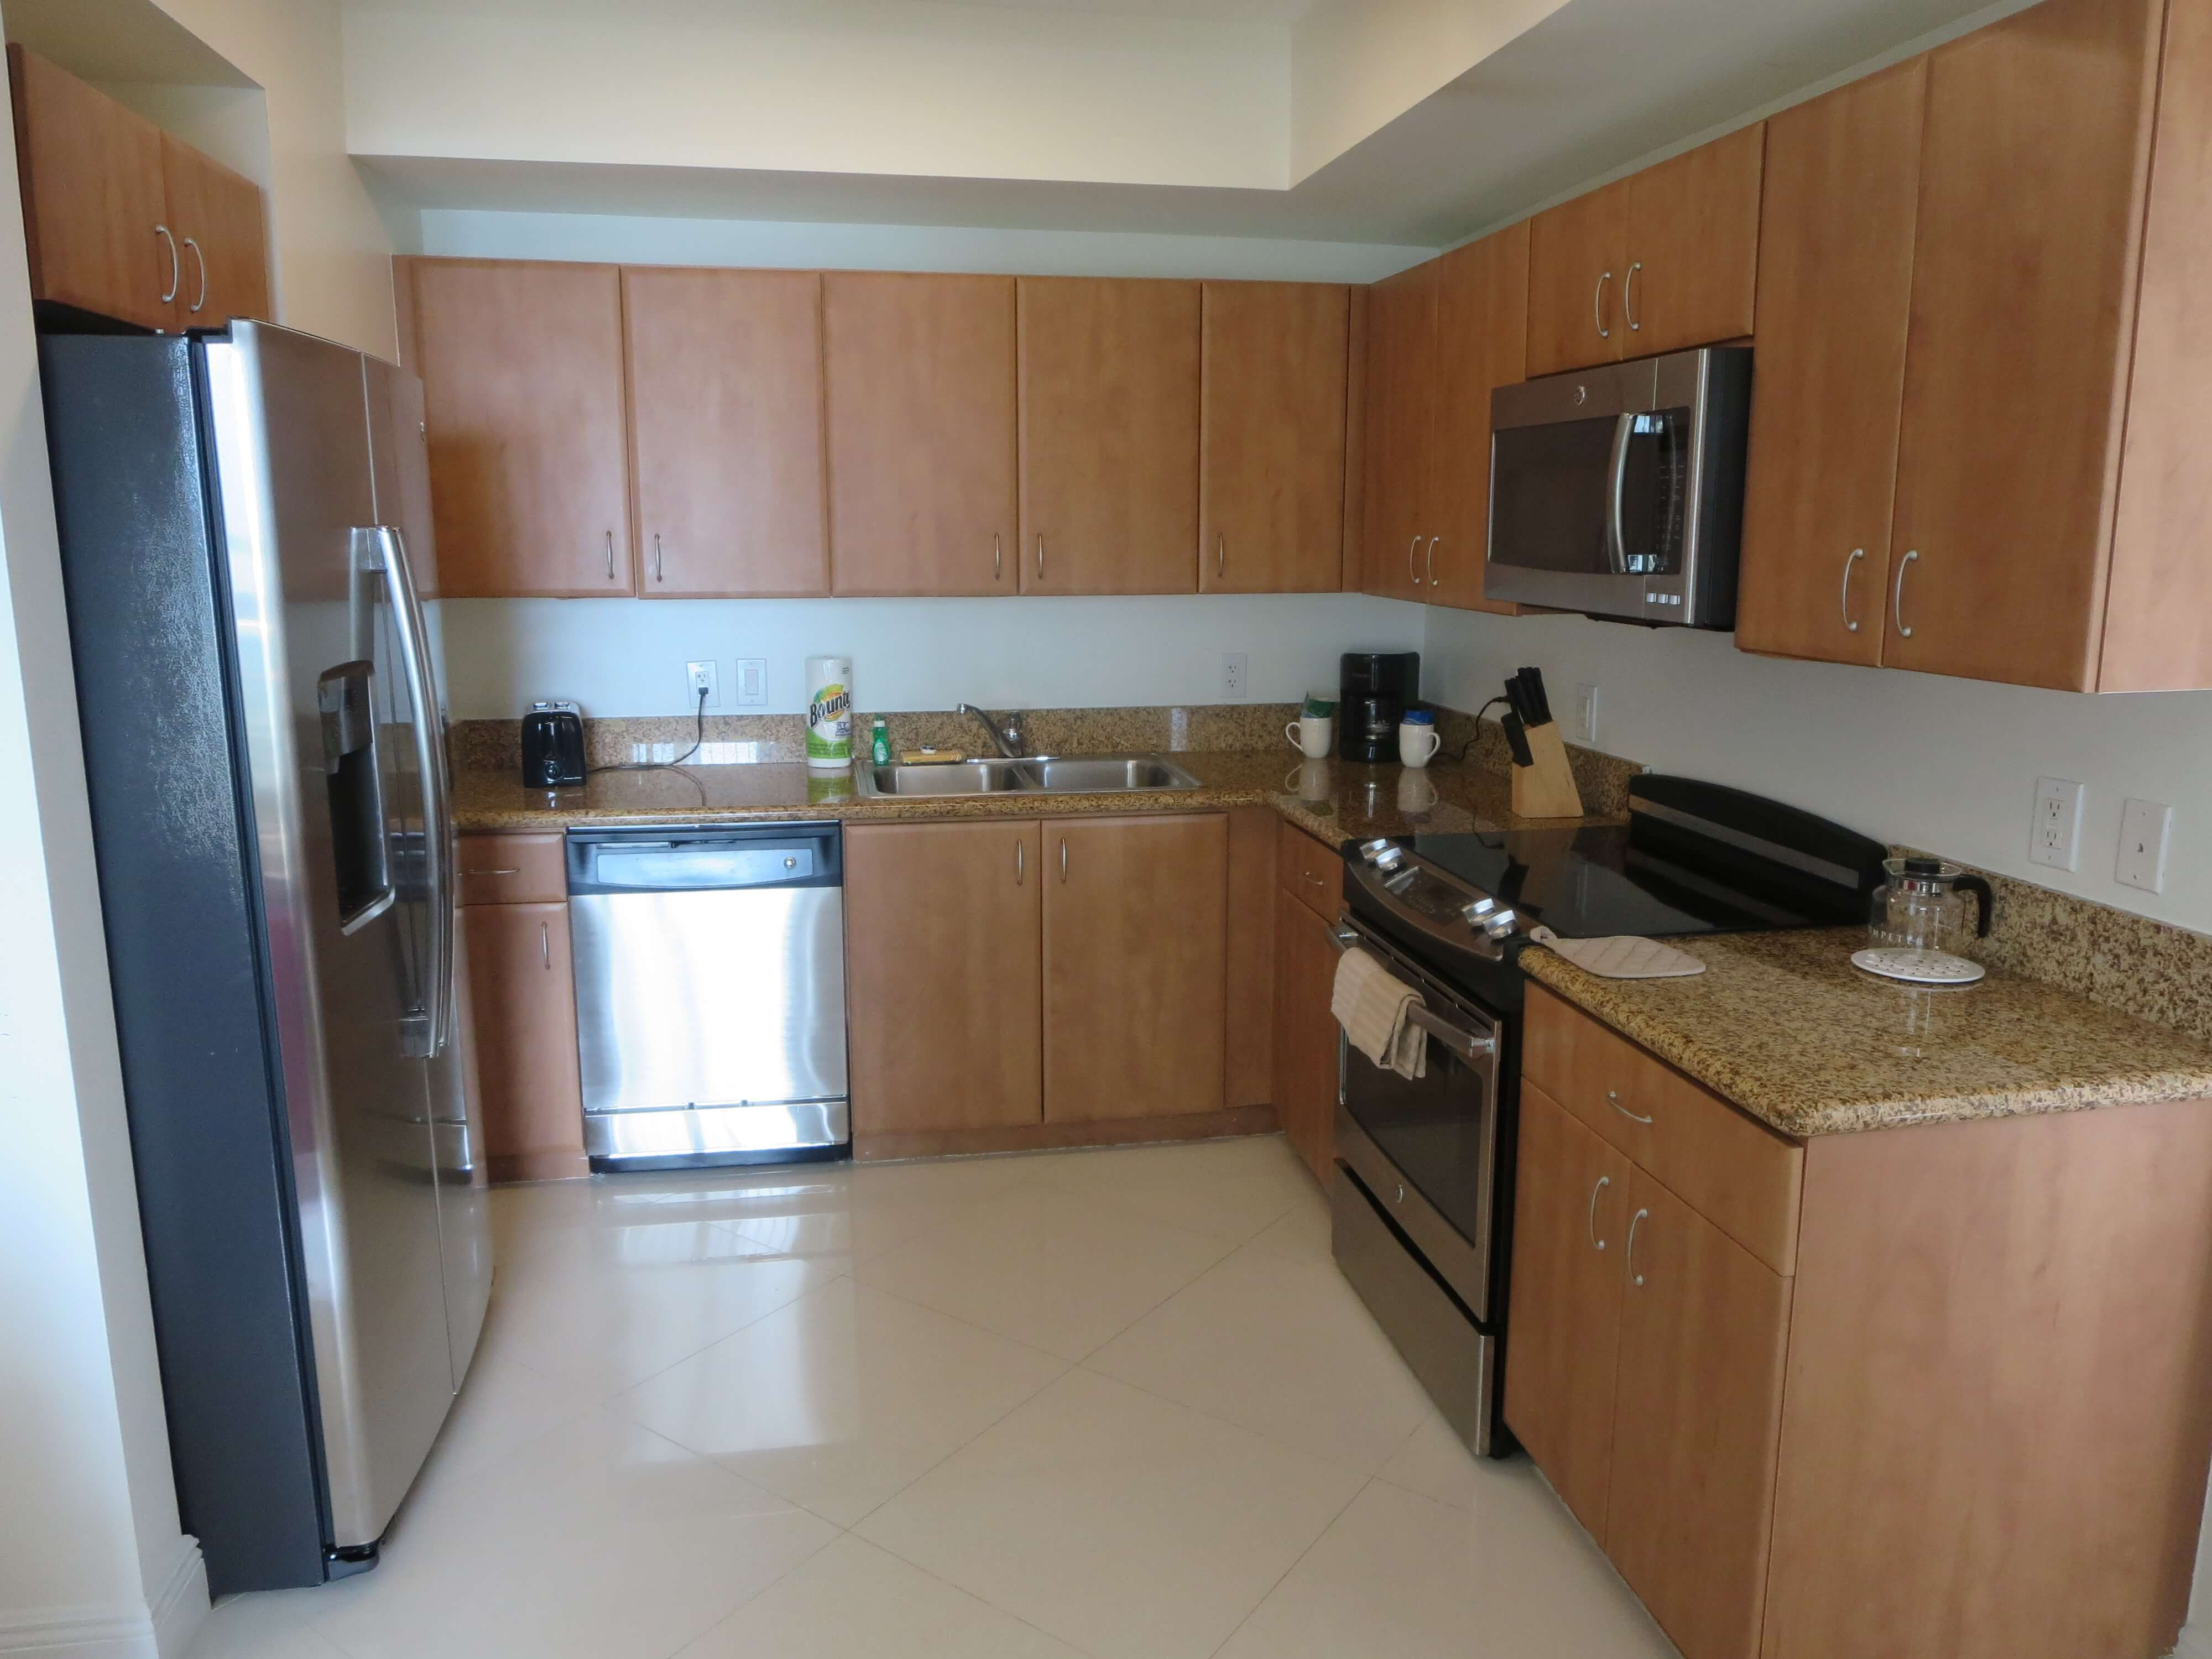 image 3 furnished 1 bedroom Apartment for rent in Miami Lakes, Miami Area